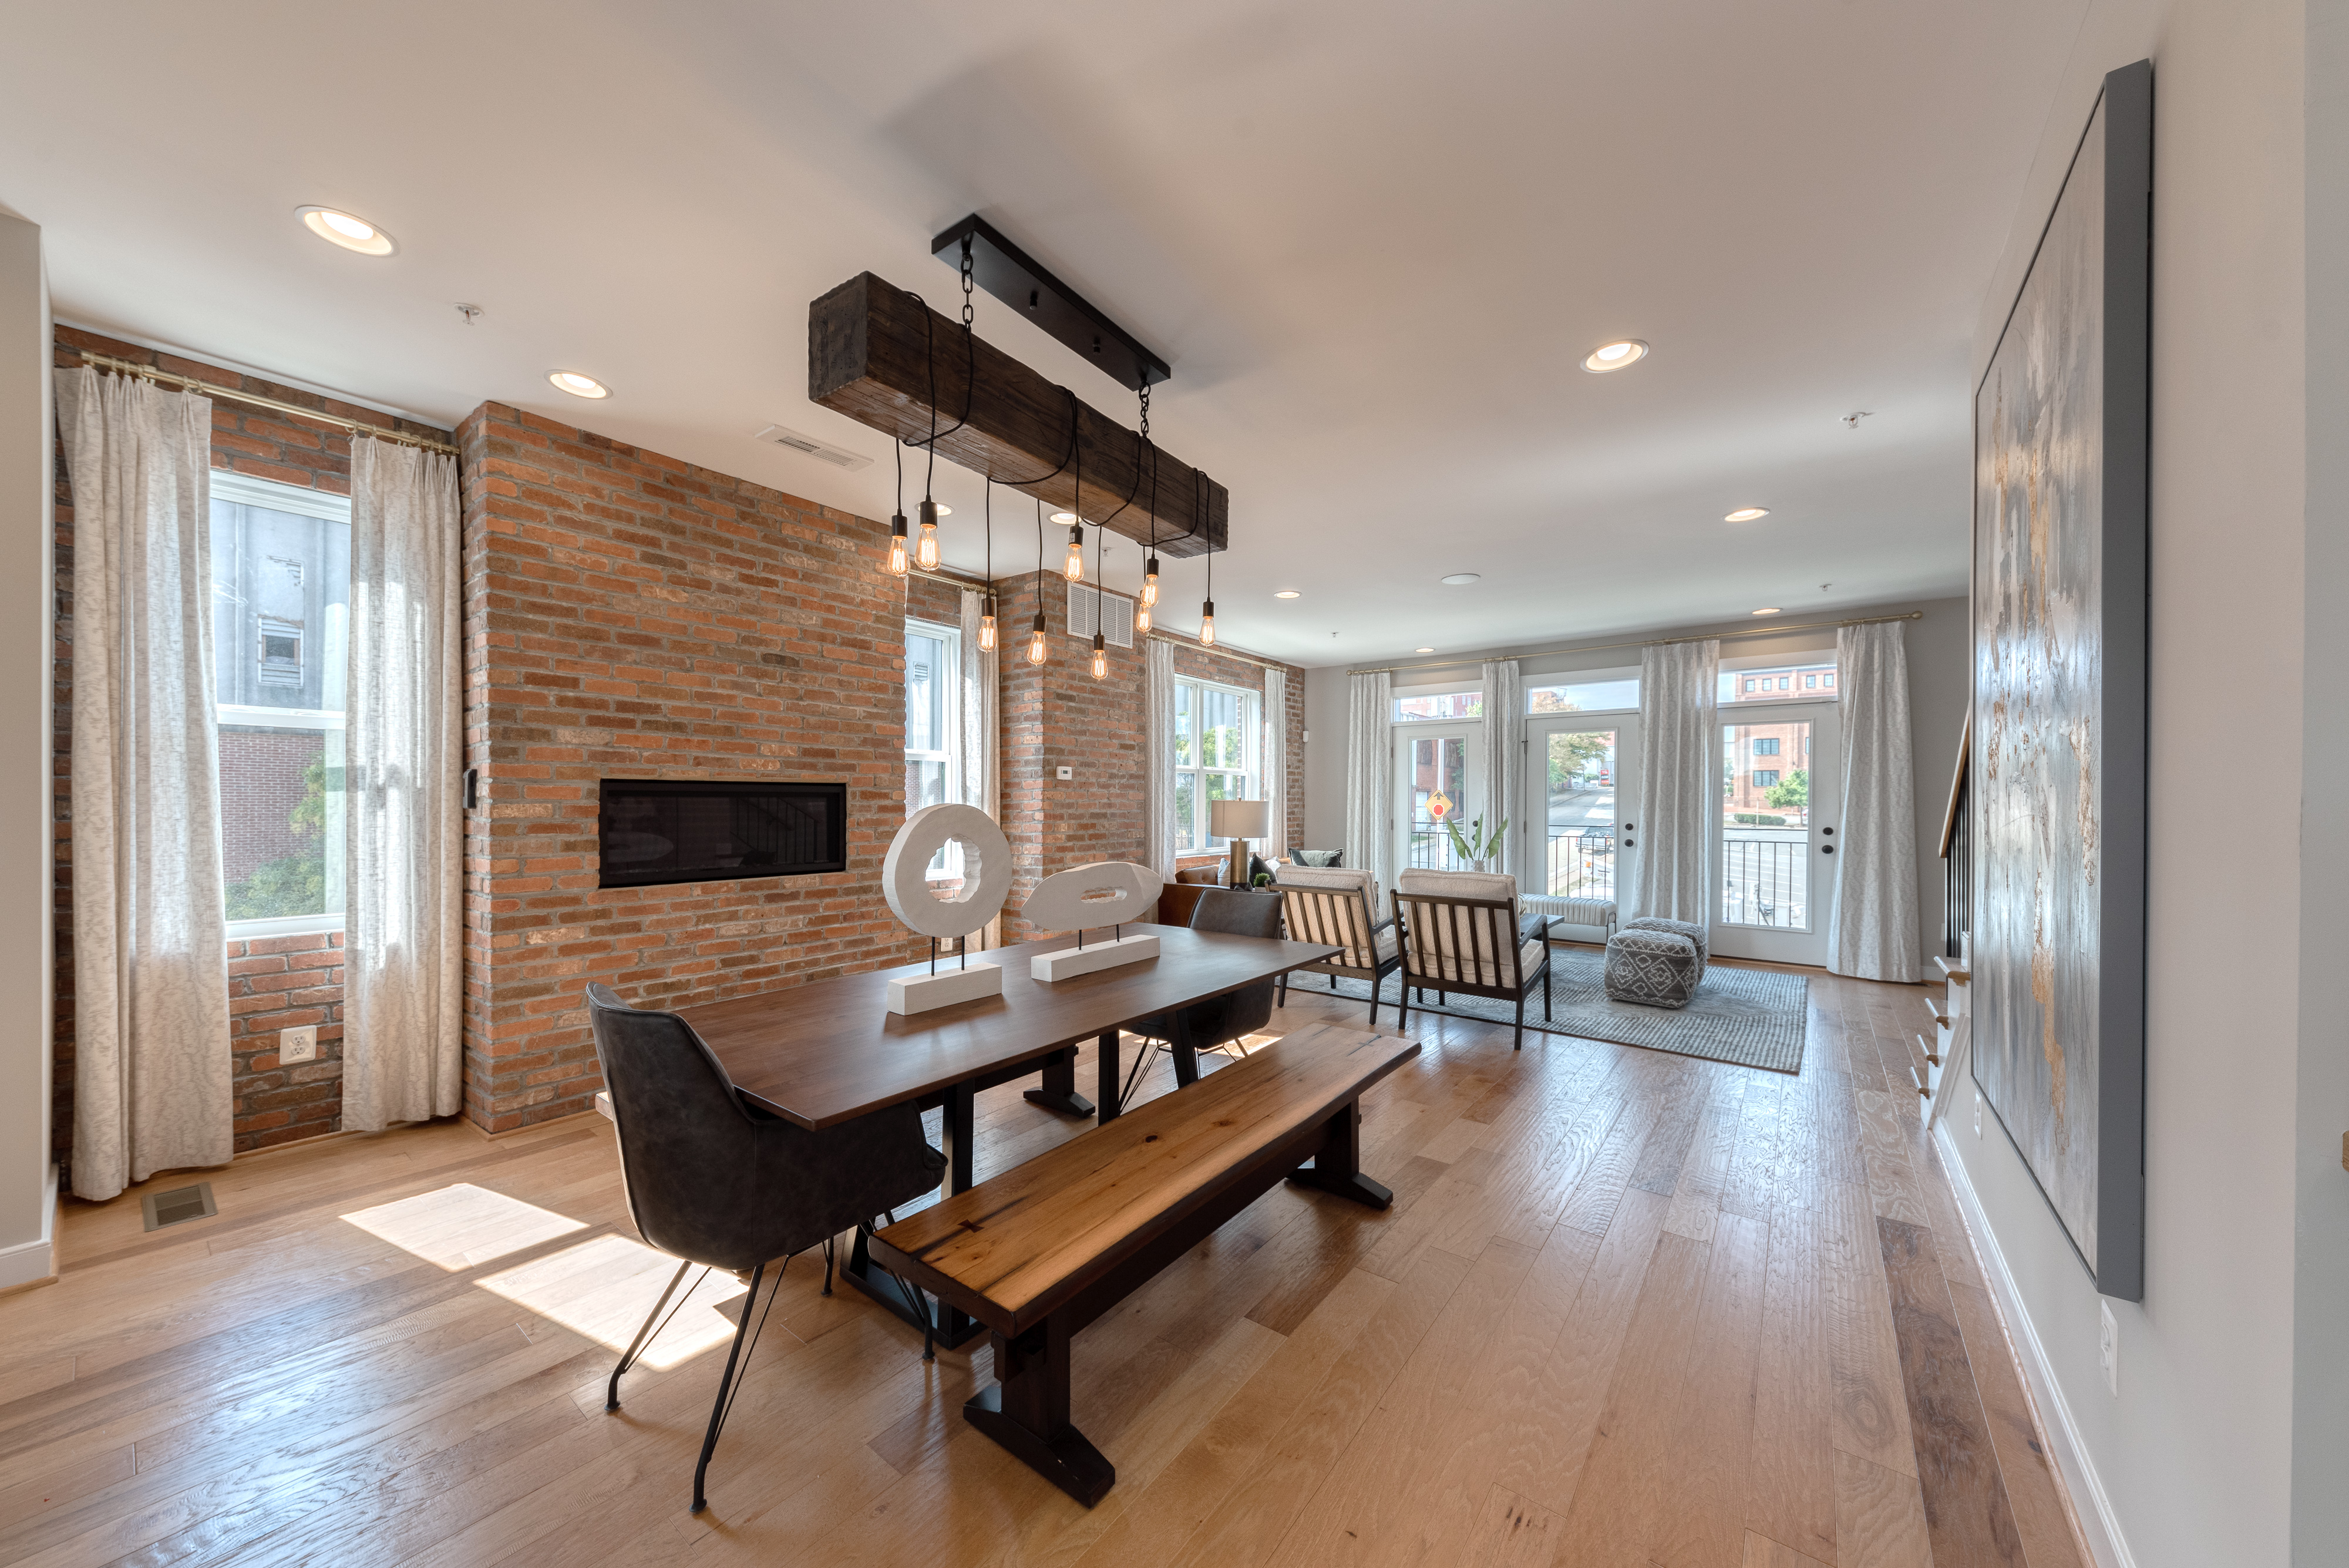 Dining Space with Table and Large Chandelier and Fireplace in Brick Wall